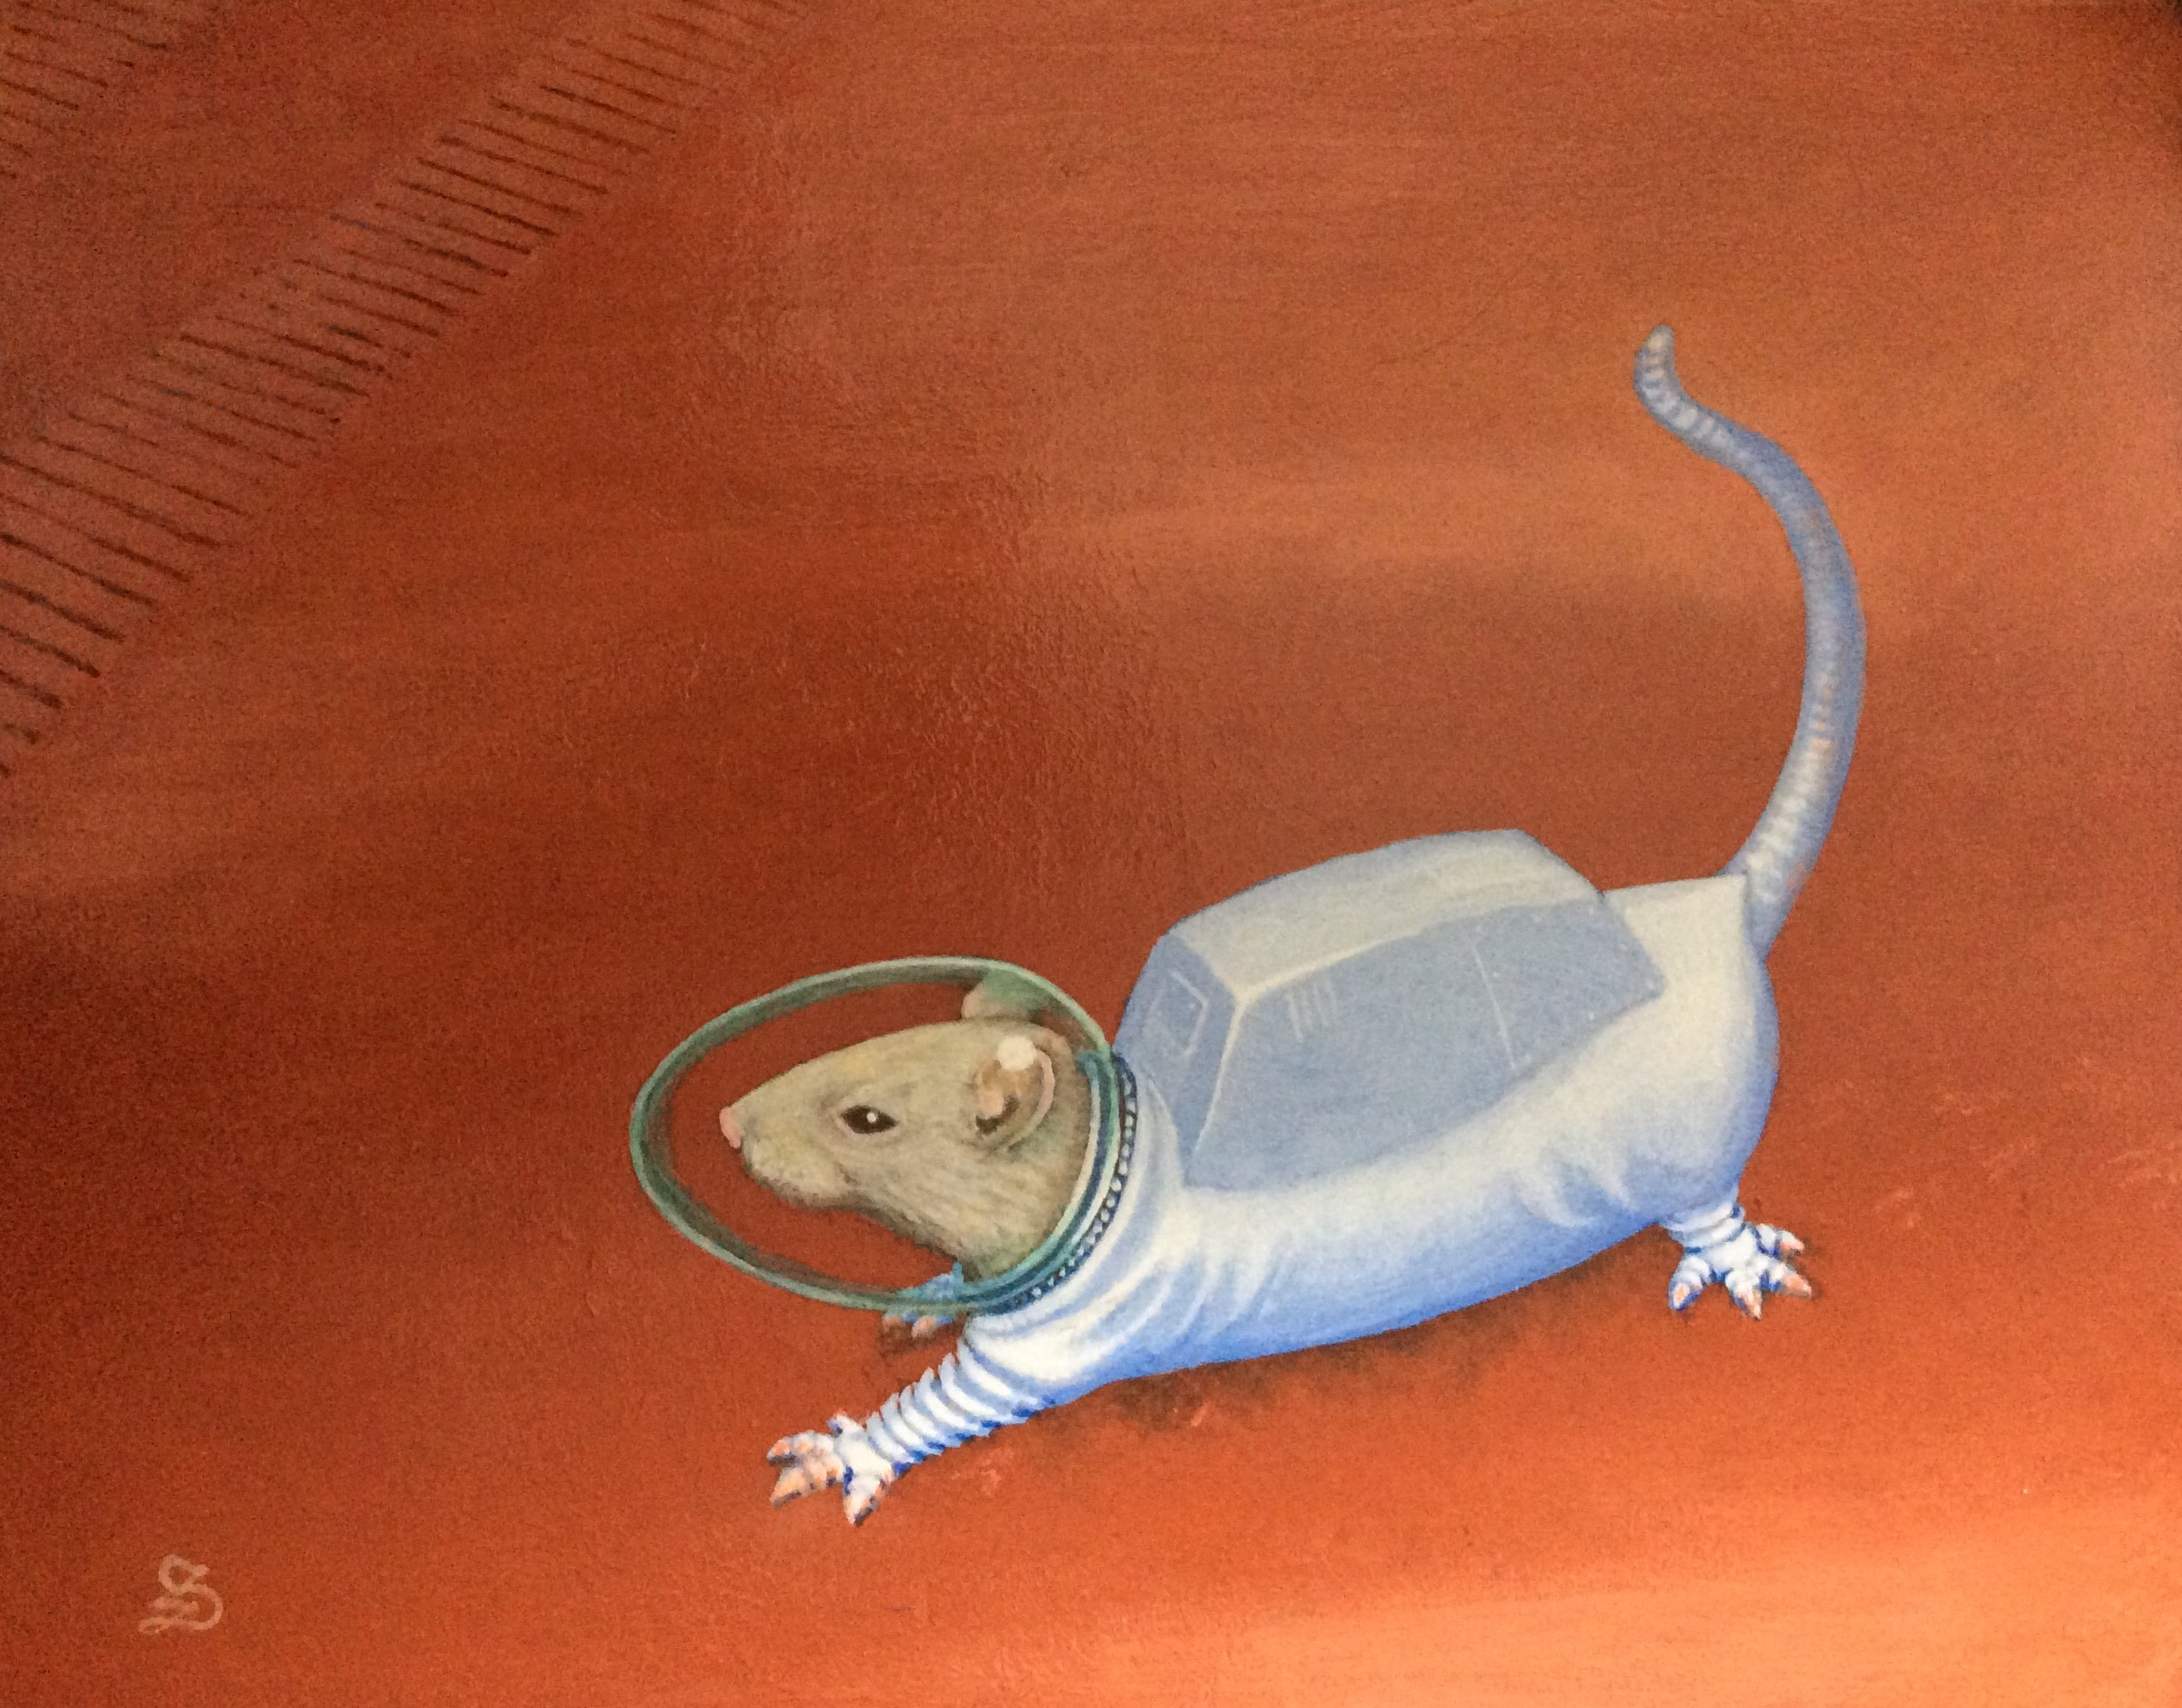 First Rat on Mars